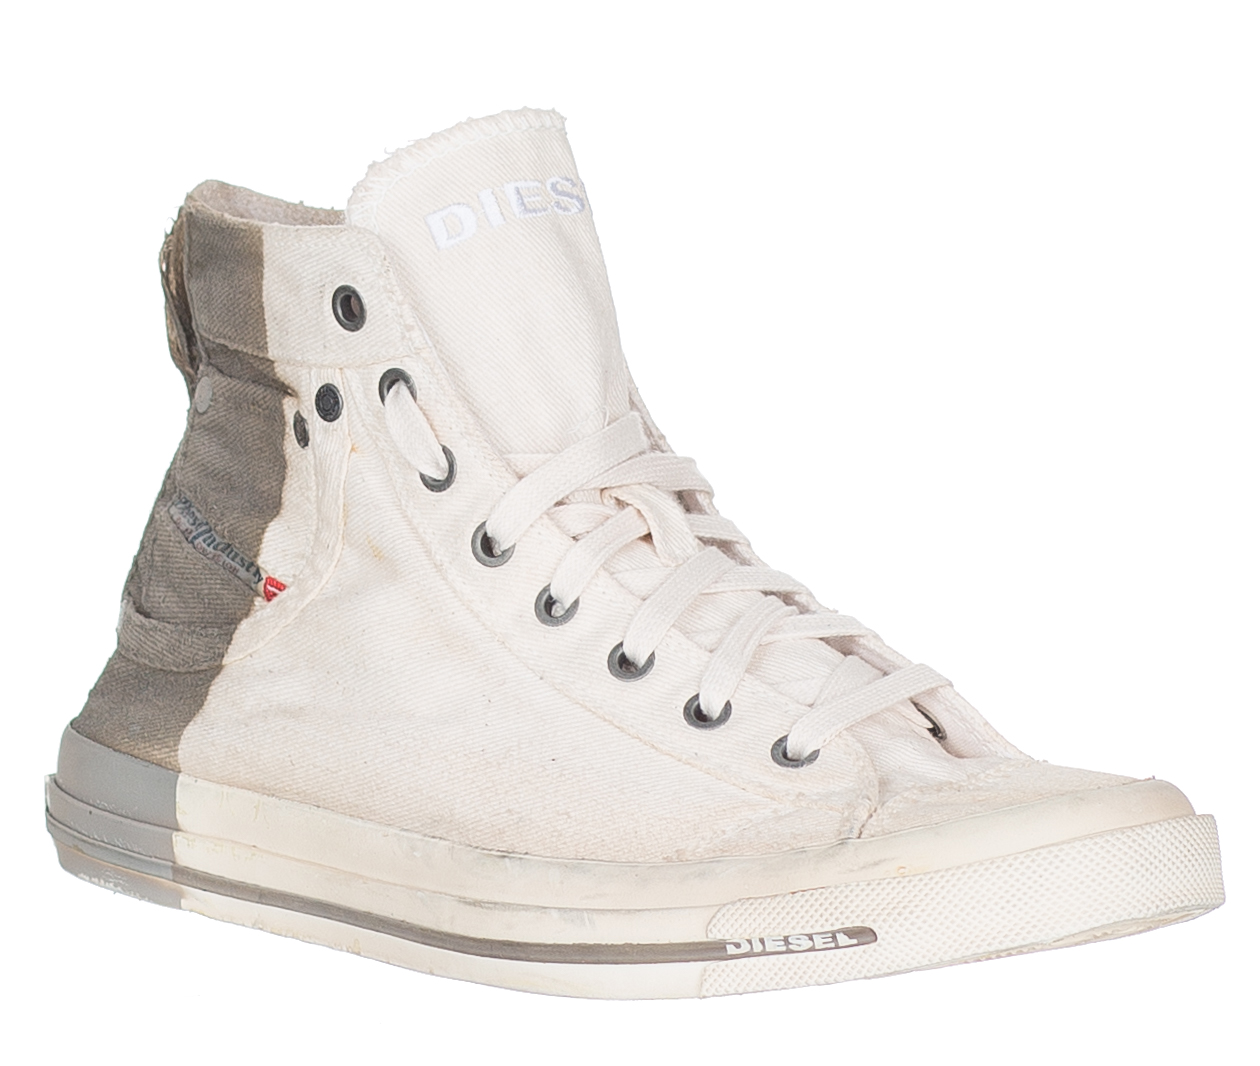 d6a2f93404ab Diesel Men s Off White Gray High Top Denim Exposure Sneakers Shoes